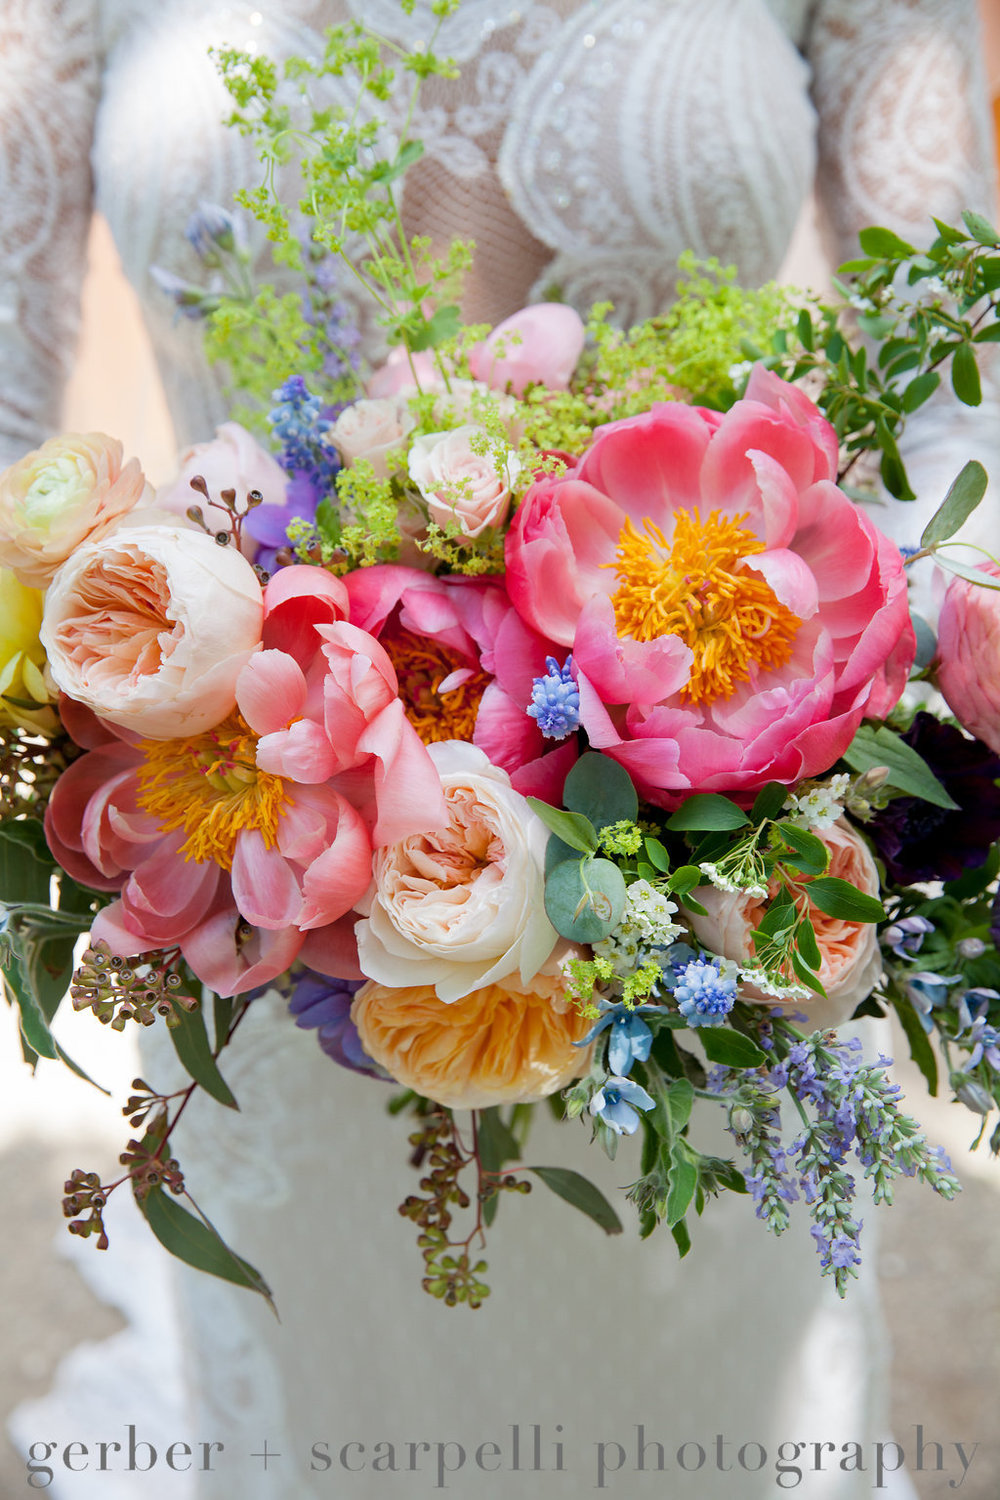 Coral Charm bouquet inspired by Monet's Garden.  Designed by Fleur Inc, photographed by Gerber & Scarpelli,